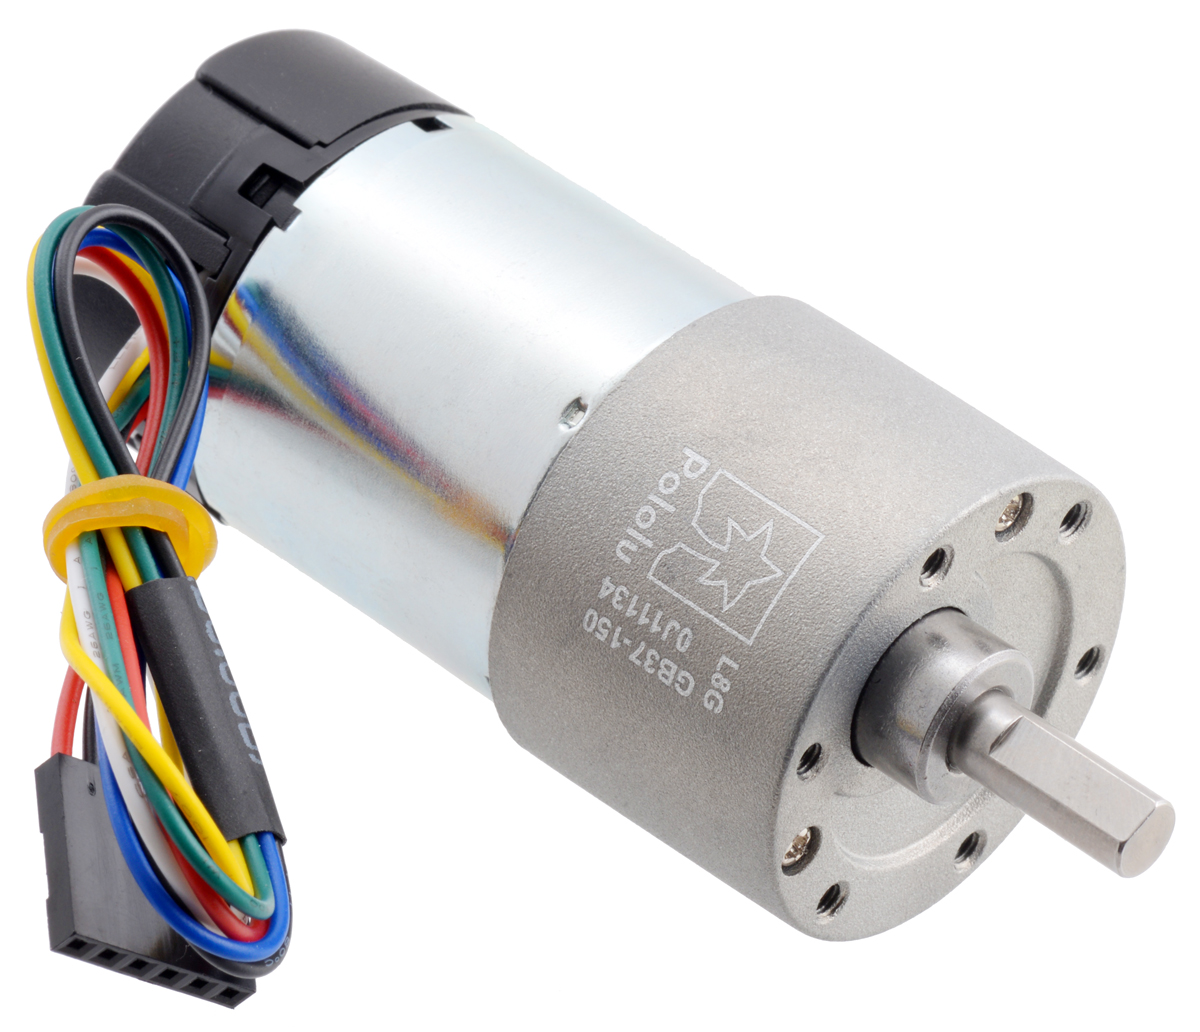 150:1 Metal Gearmotor 37Dx73L mm 24V with 64 CPR Encoder (Helica